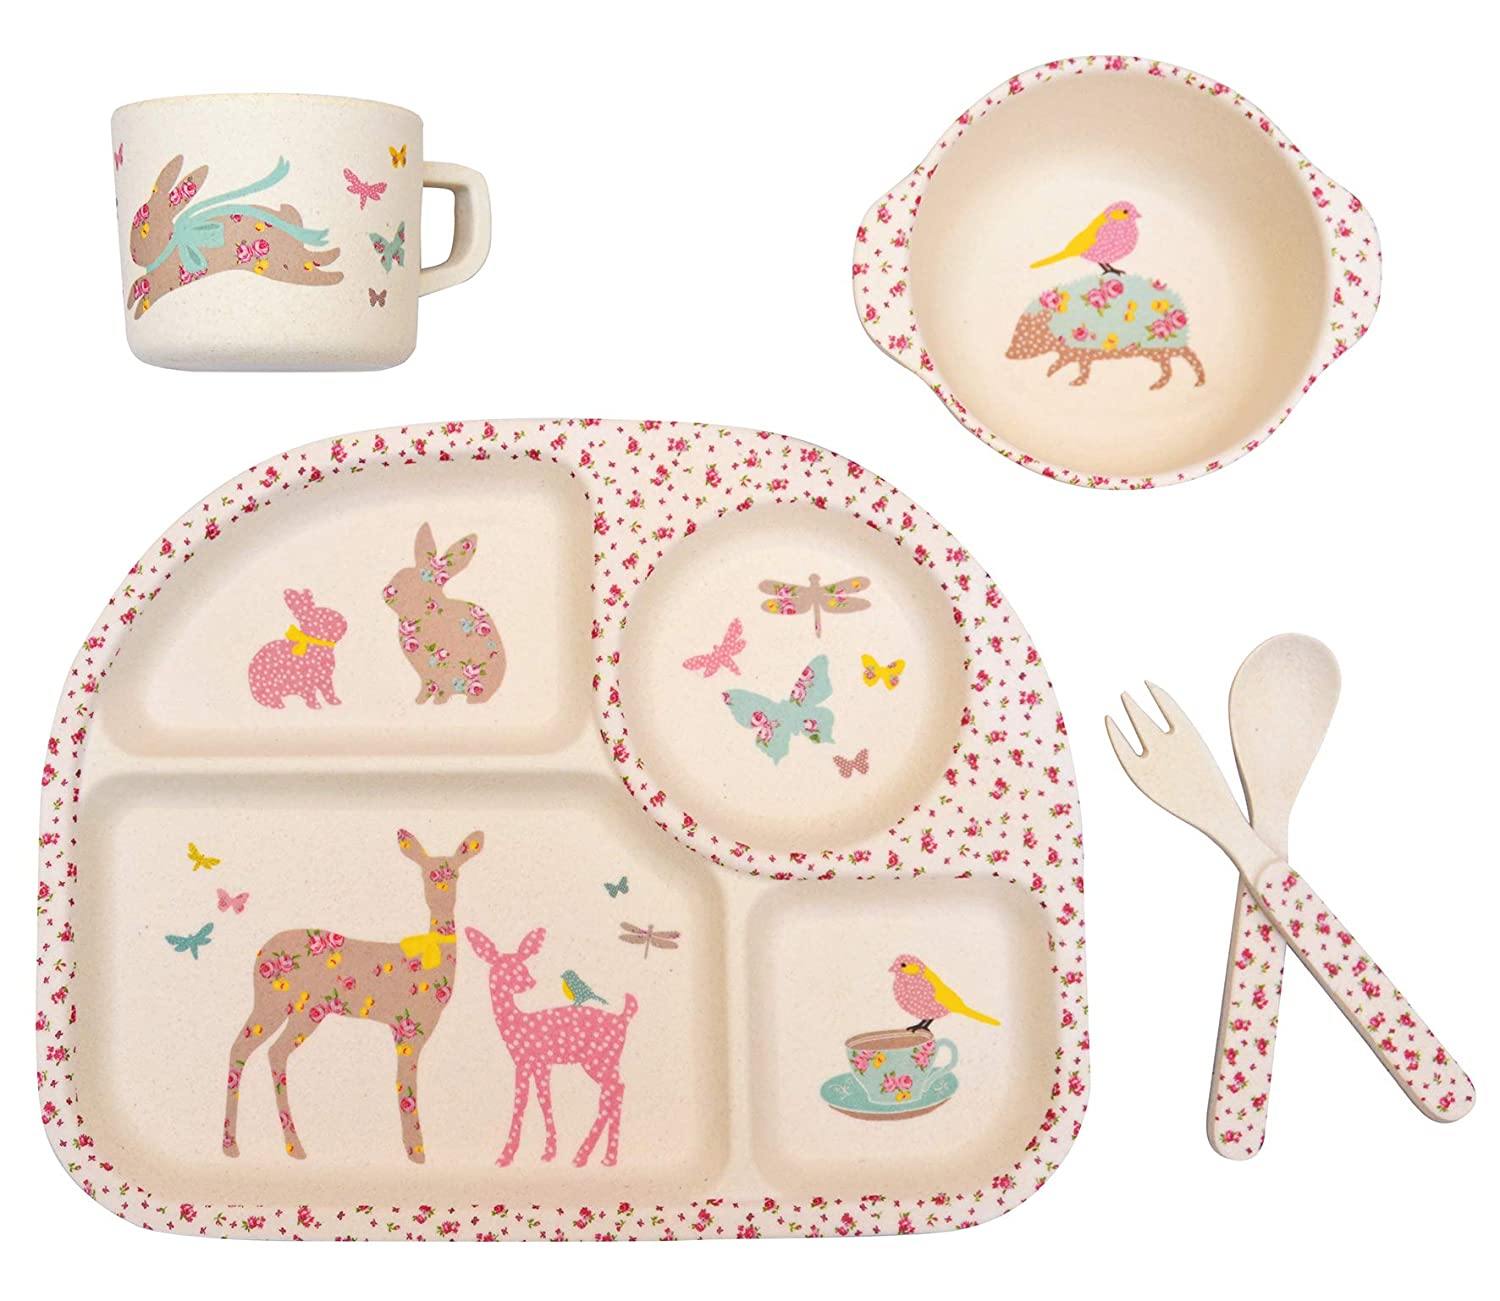 Bamboo 5pc Dinner Set ~ Vintage Floral Woodland Koko Kids